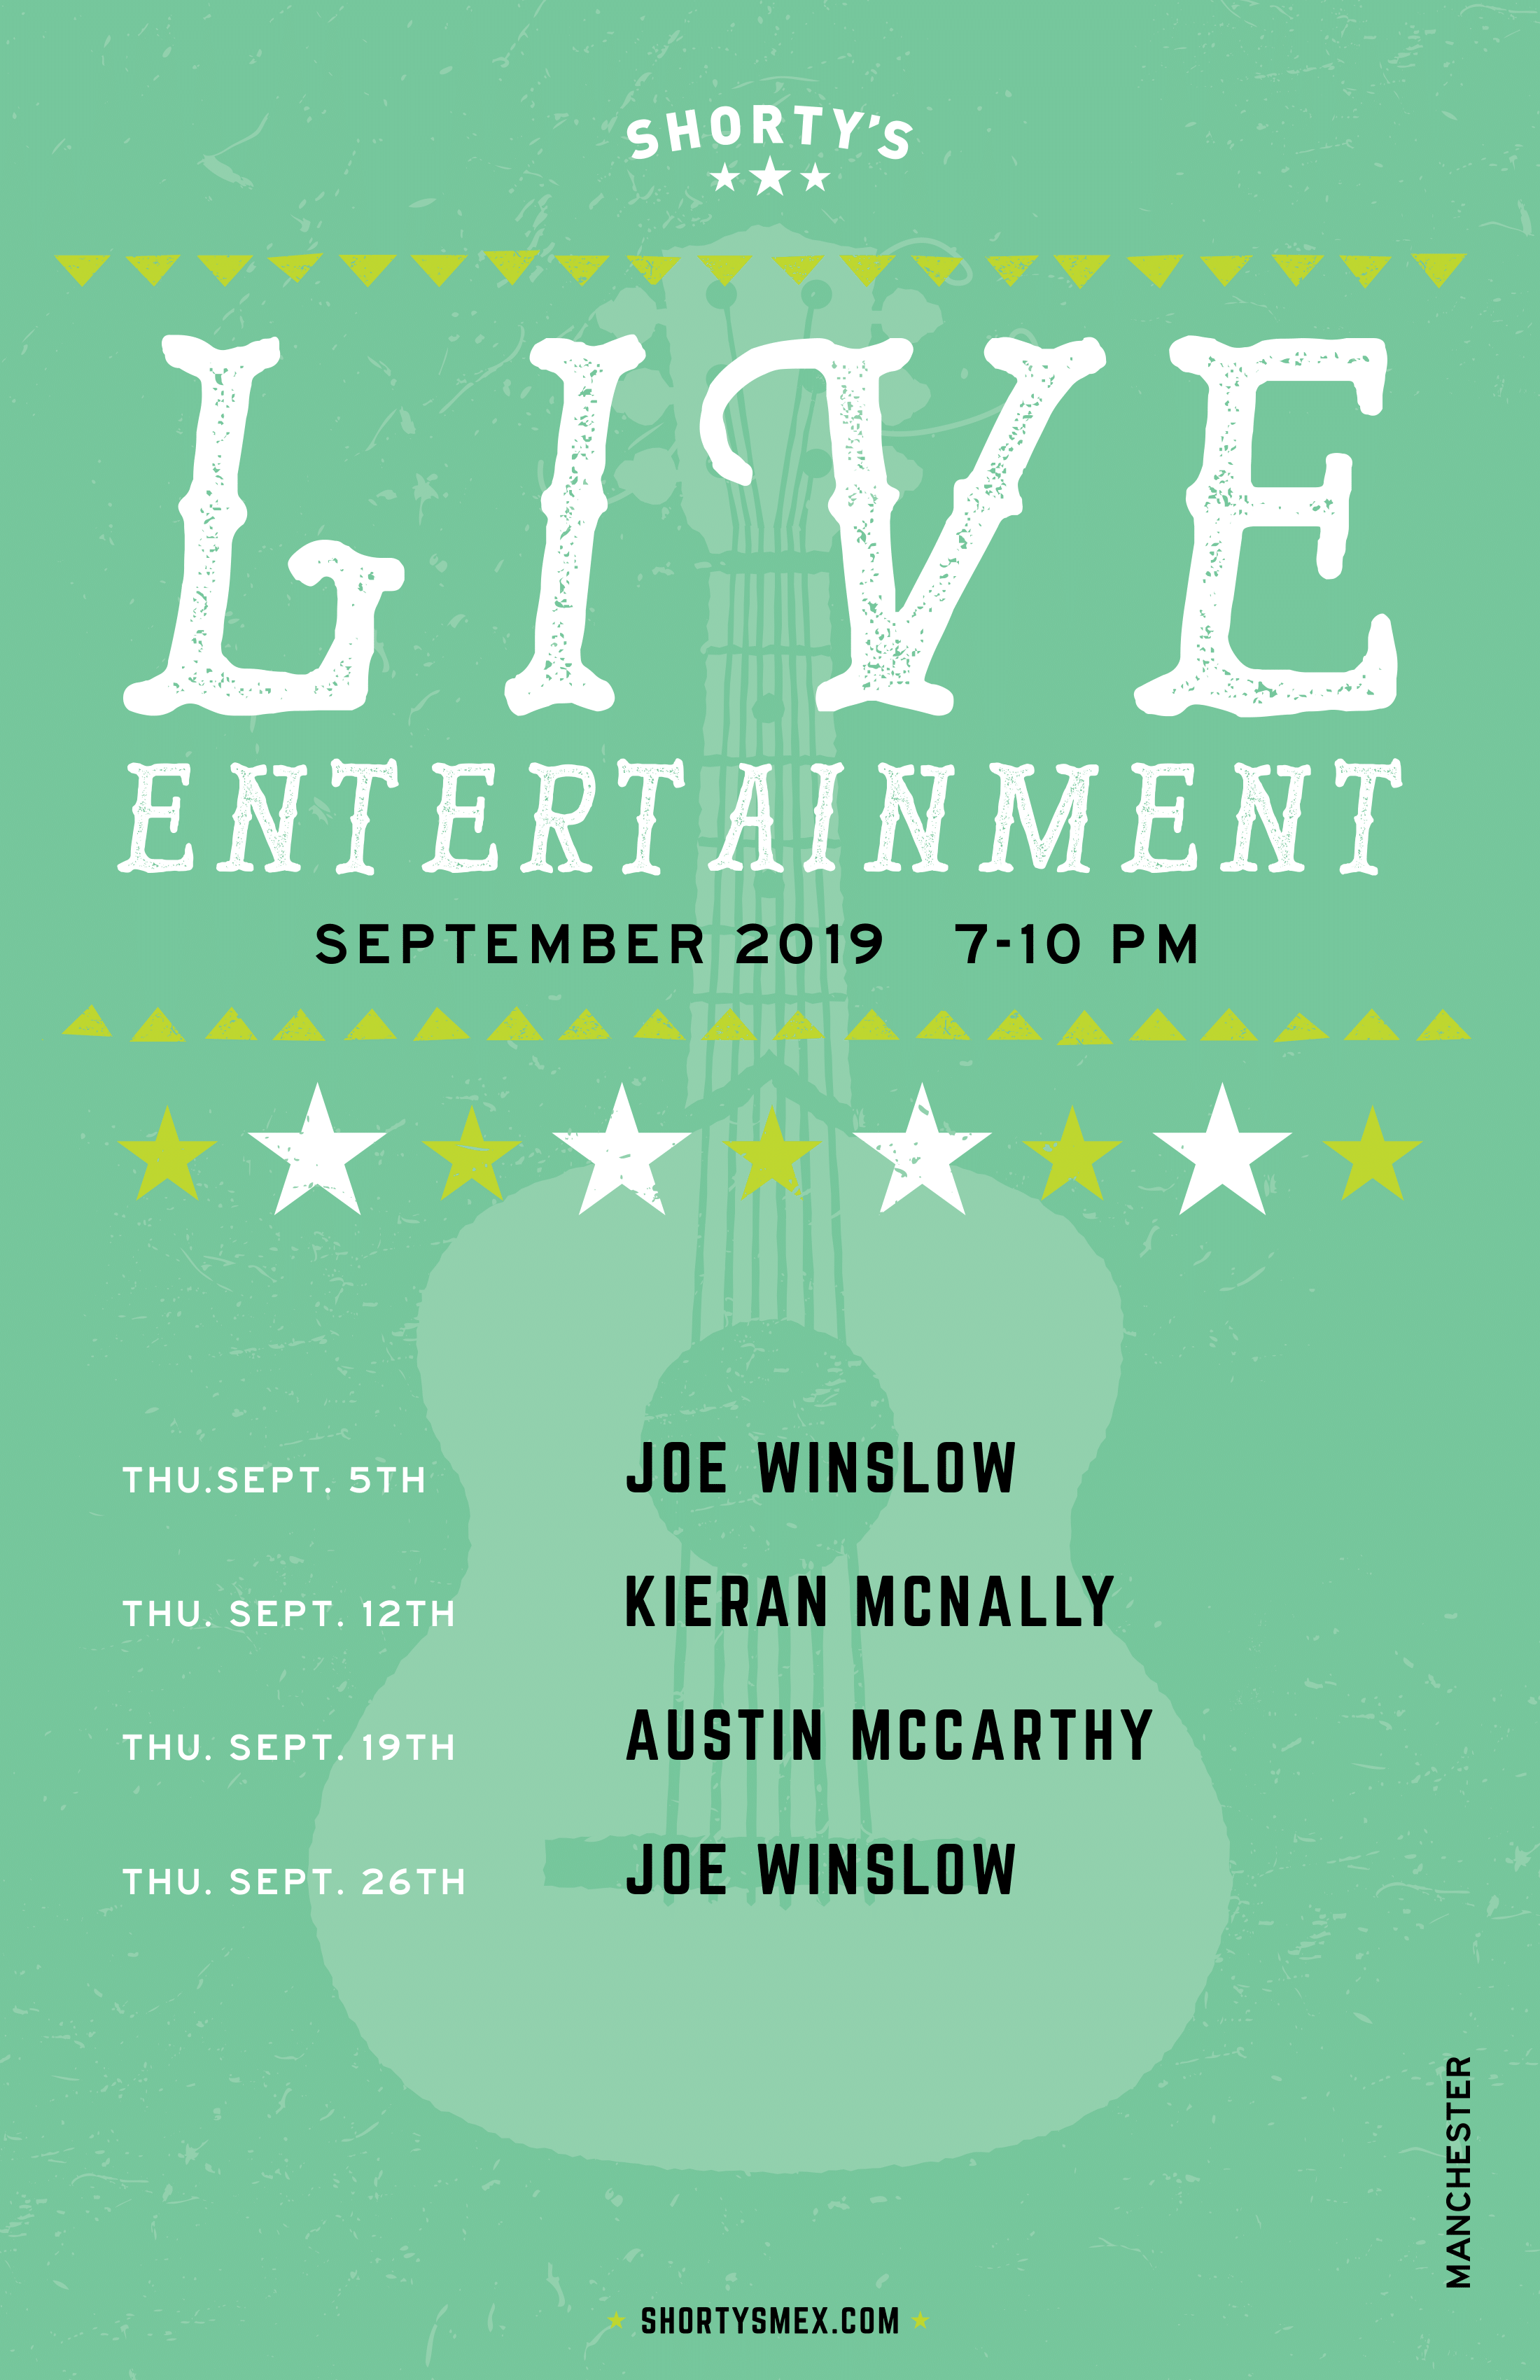 September Entertainment Schedule for Shorty's Manchester